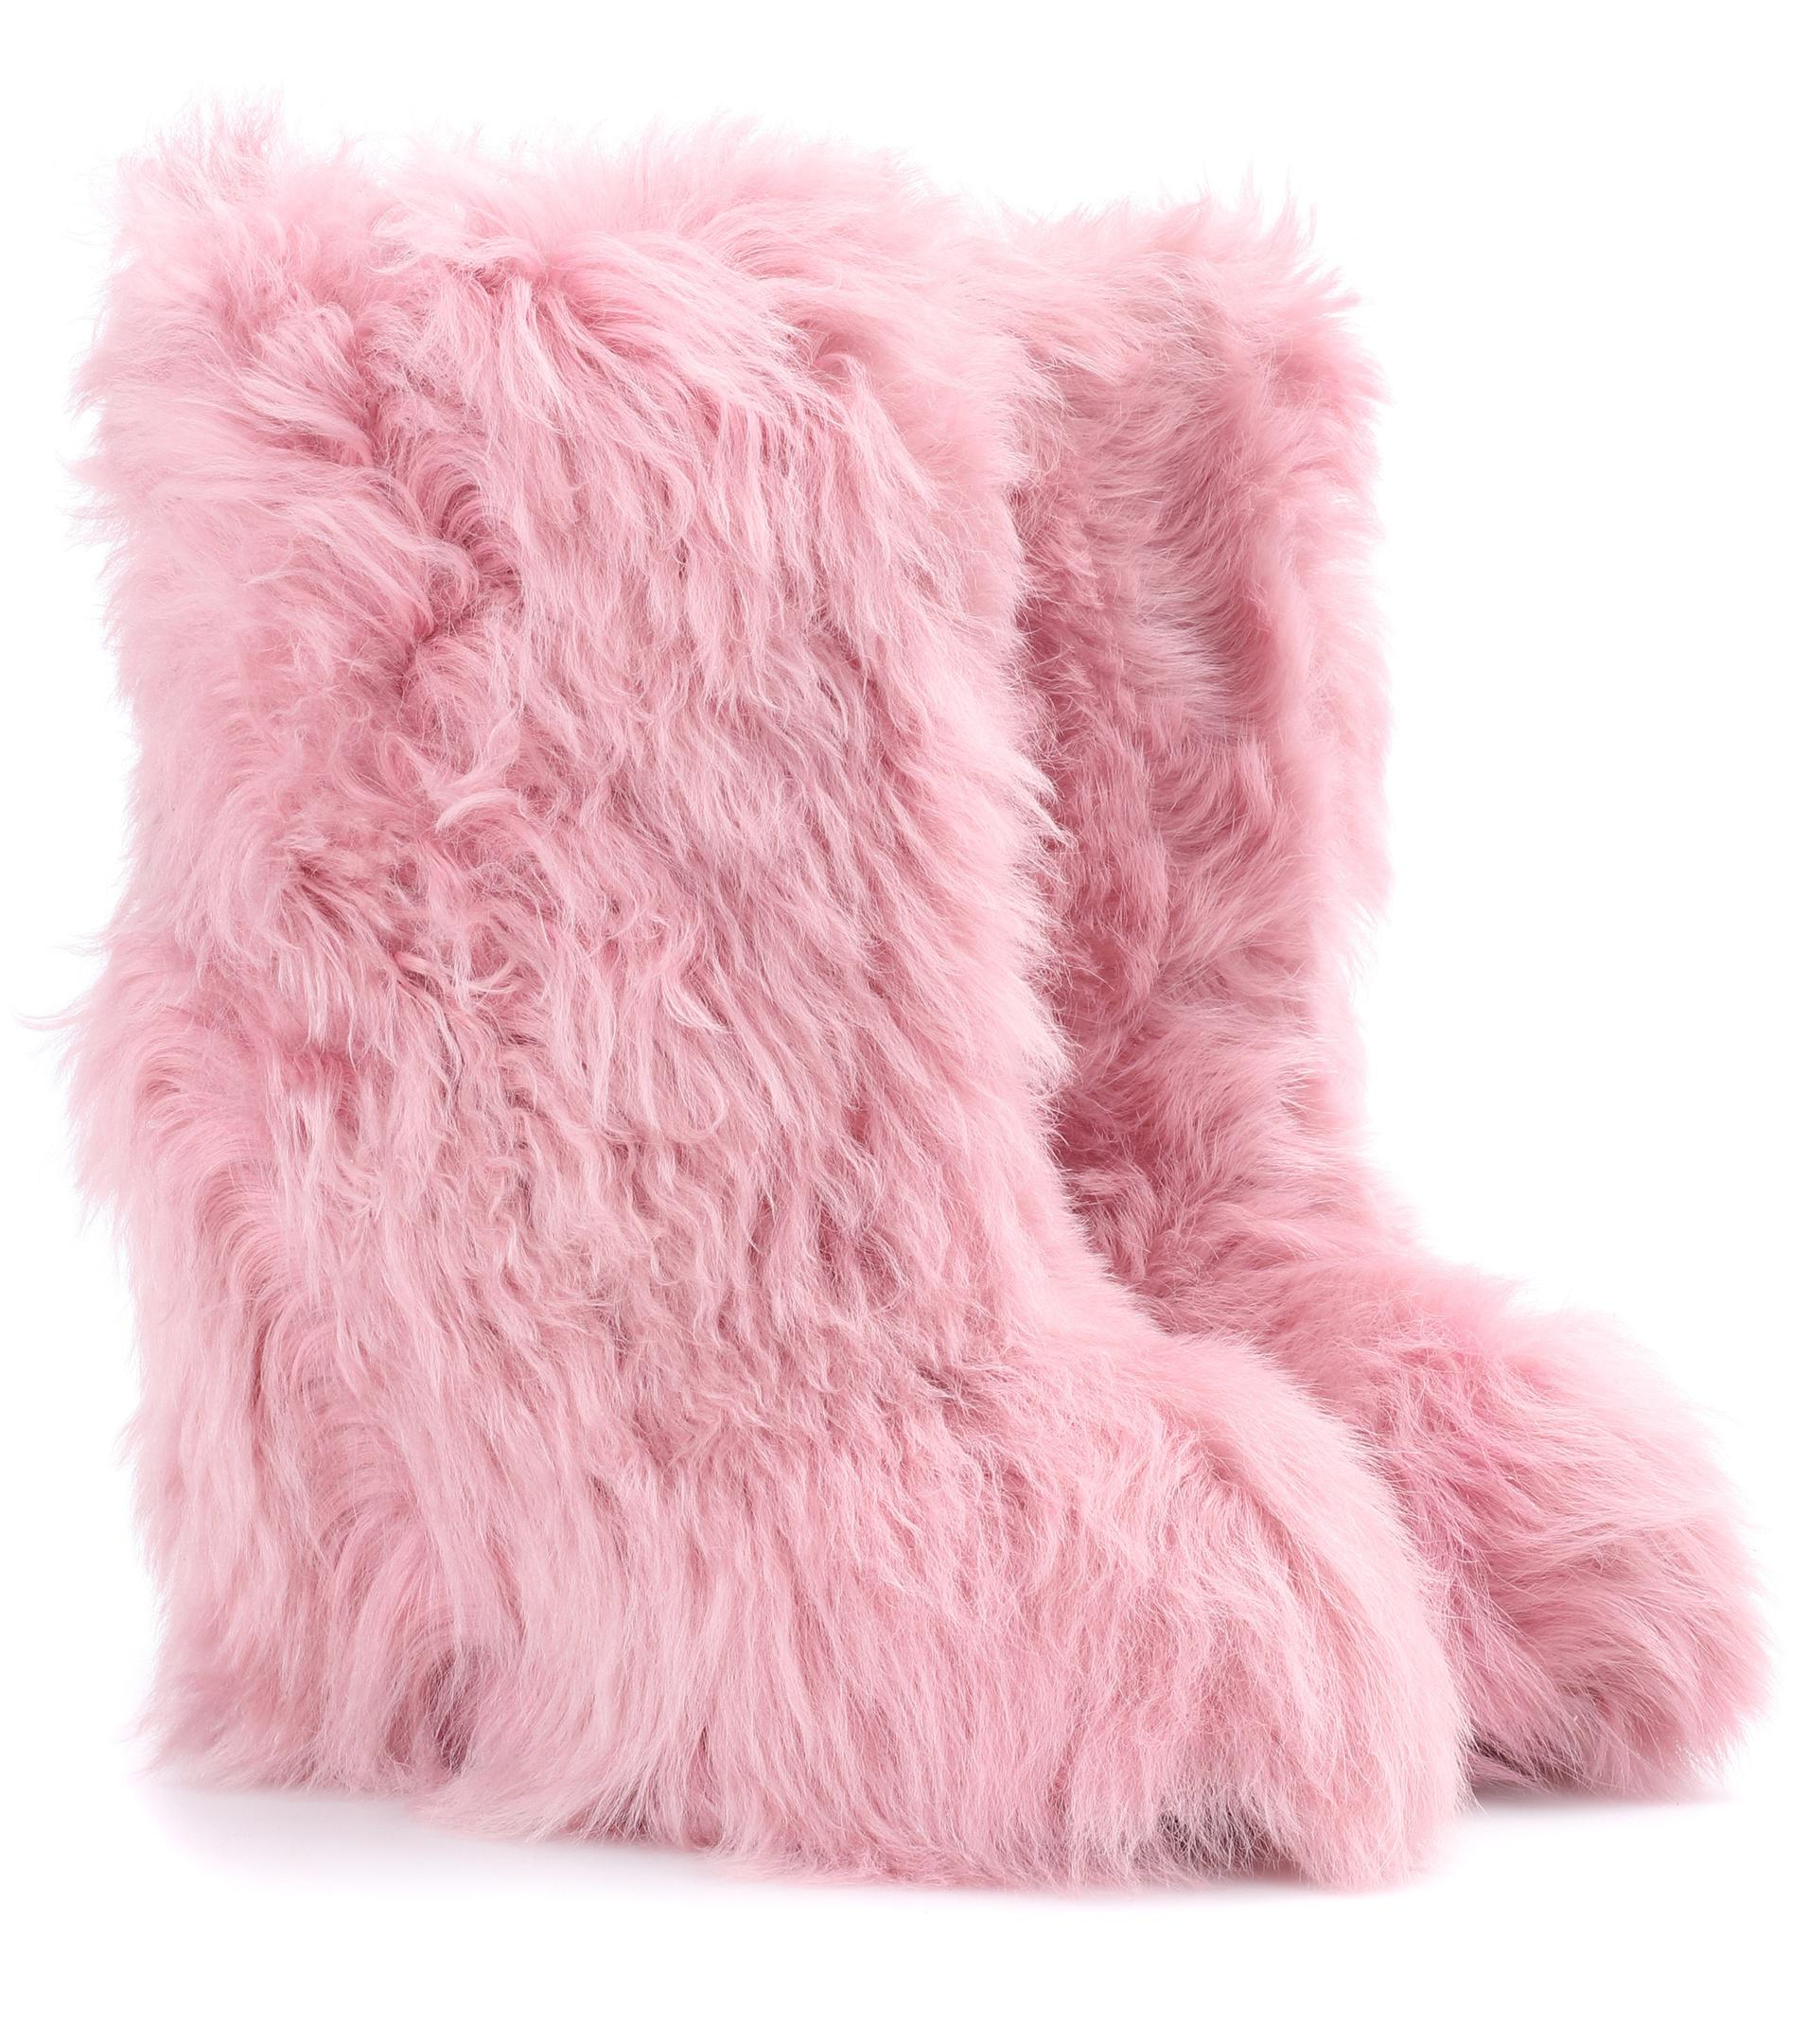 ce0520f8d5f3 Lyst - Moncler Grenoble Exclusive To Mytheresa. Com – Shearling ...